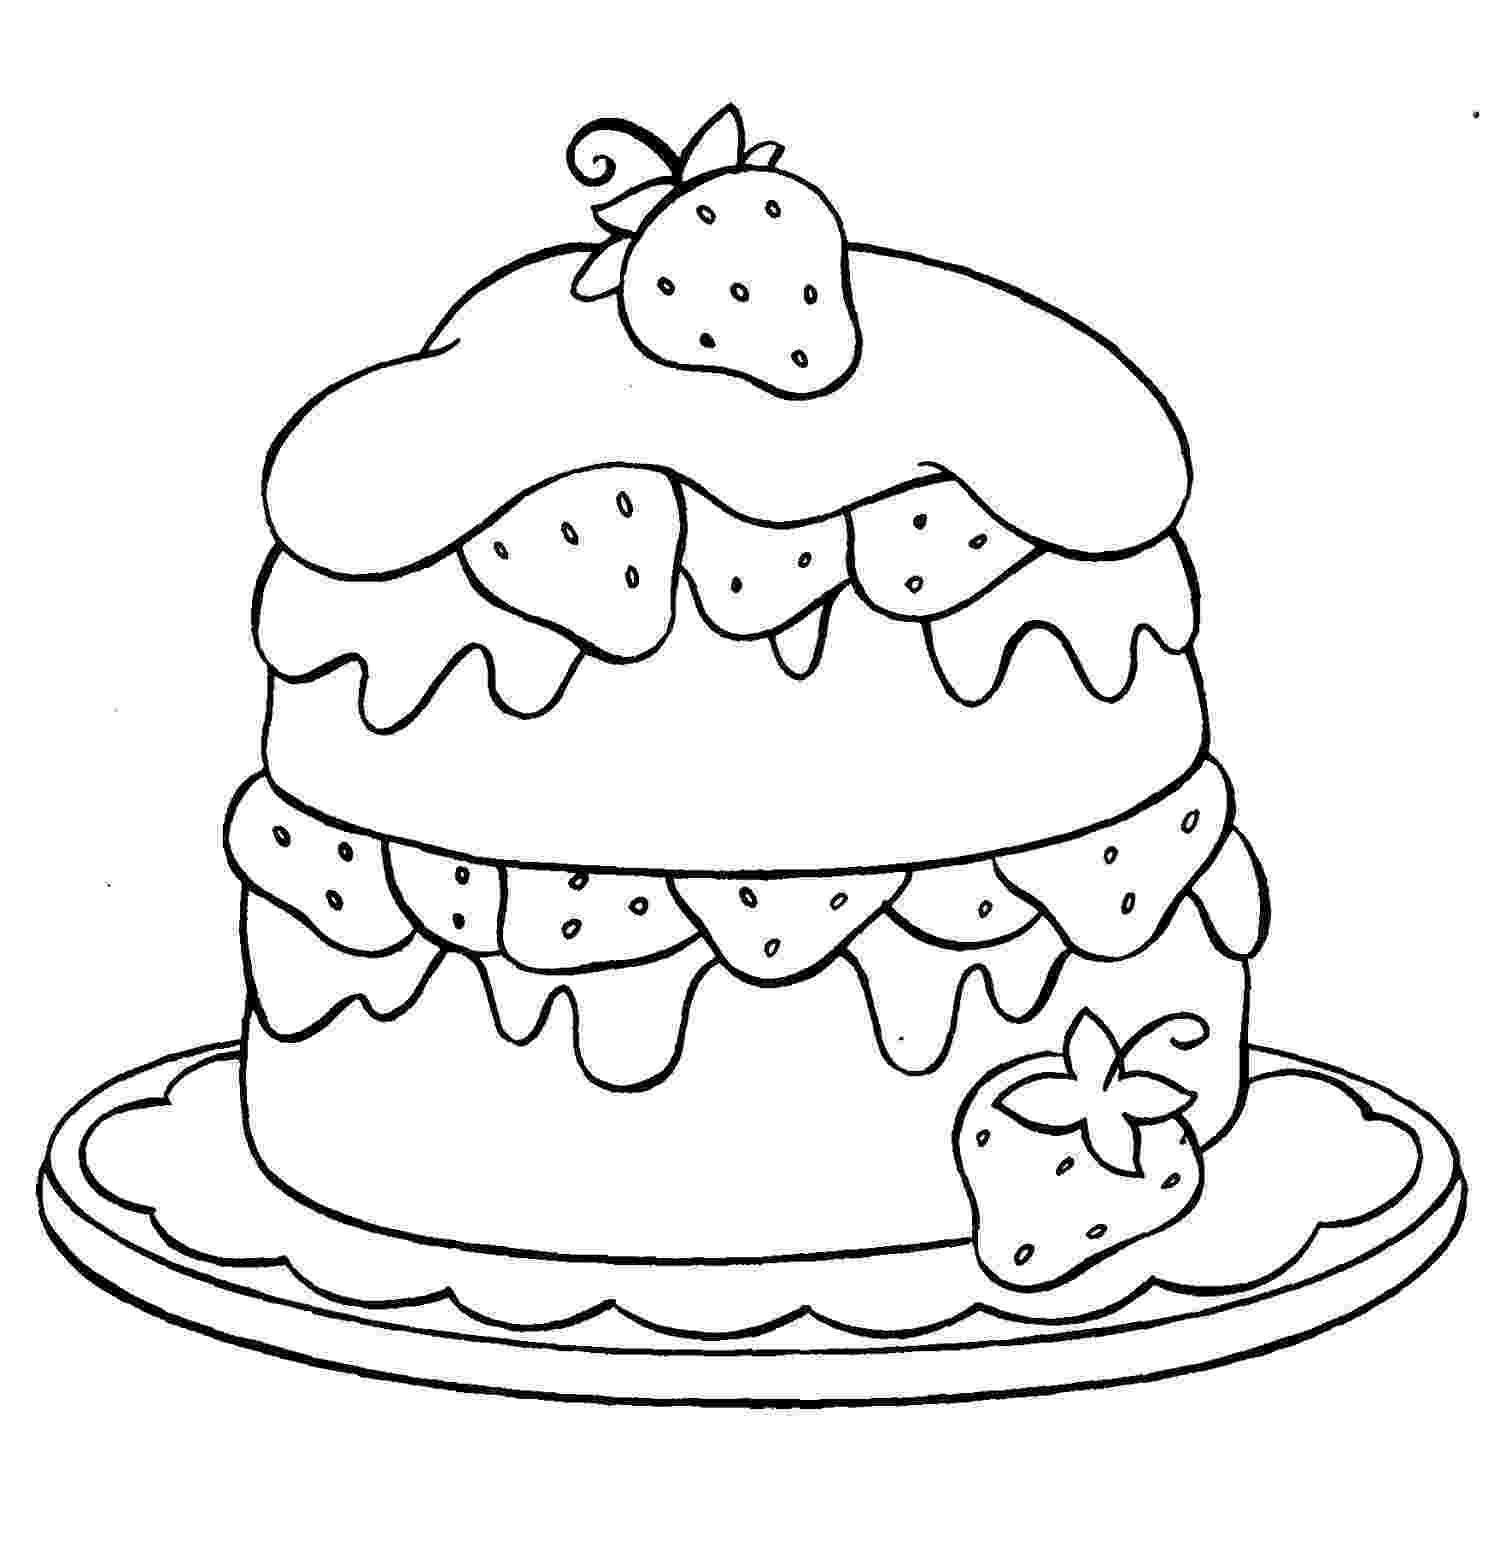 coloring strawberry fresh strawberry coloring pages learn to coloring coloring strawberry